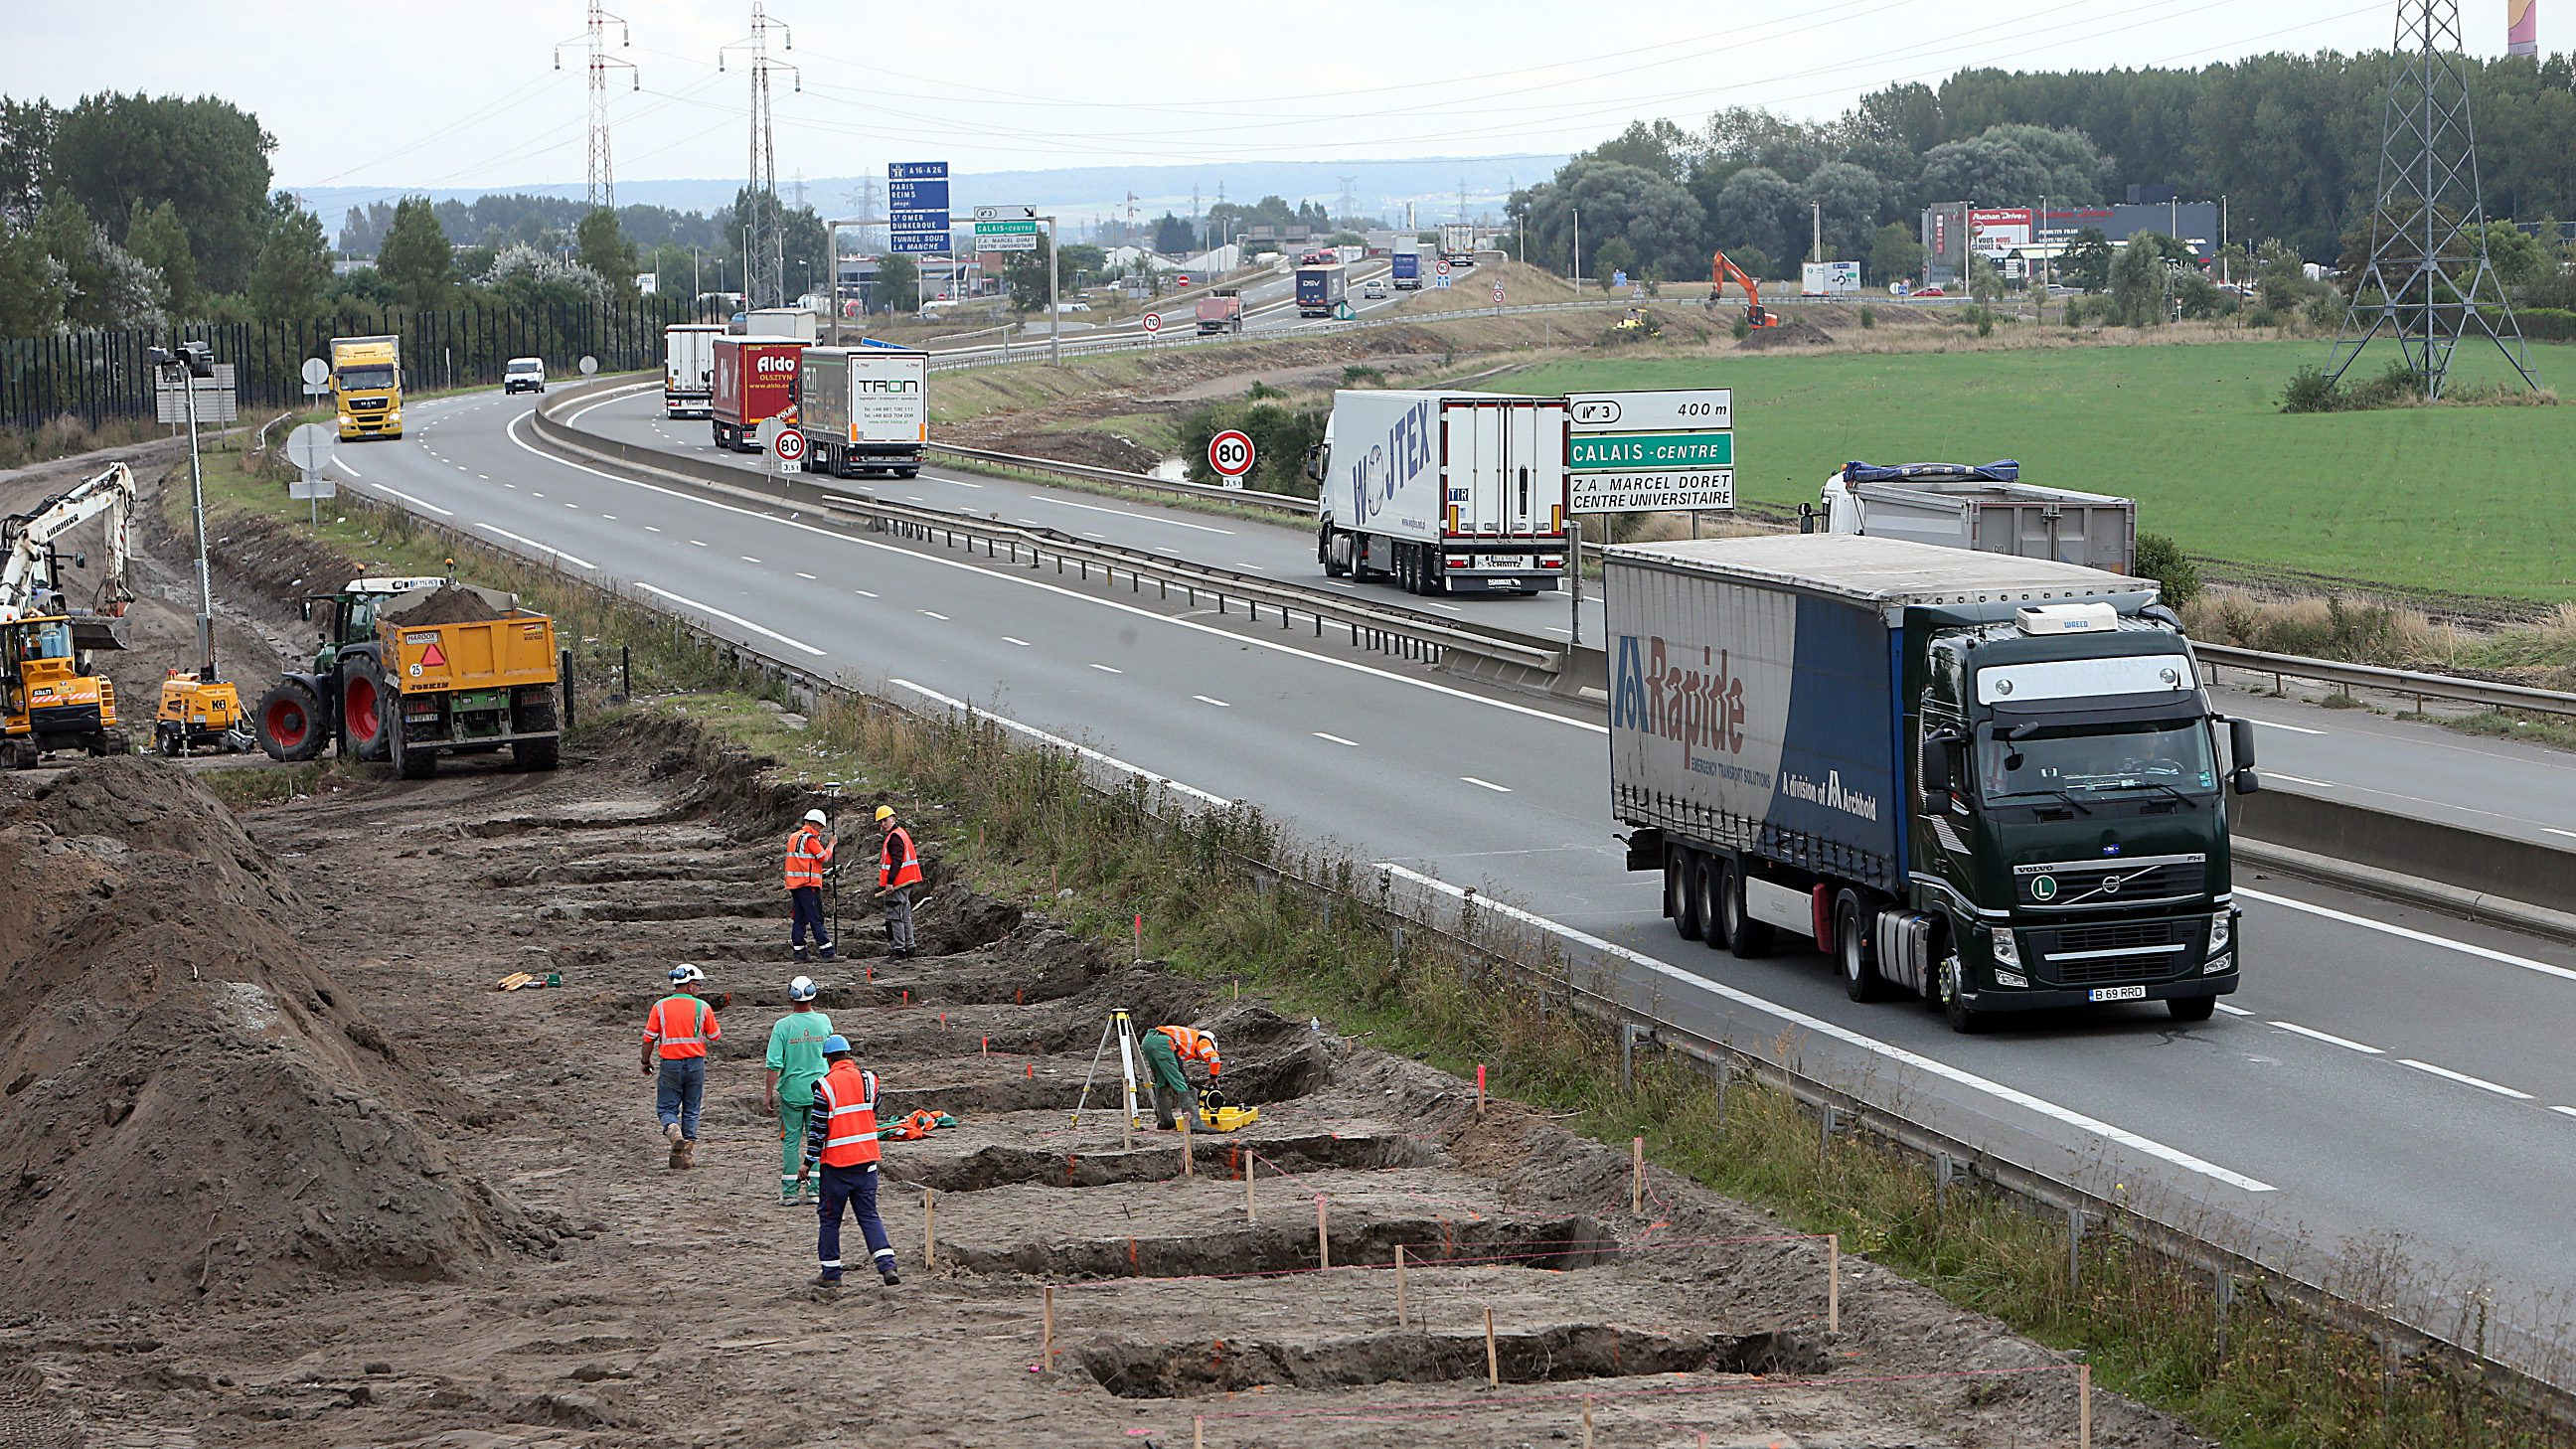 Workers begin construction of a 4-meter-high wall along the highway leading to the Calais port, outside Calais, northern France, Tuesday, Sept. 20, 2016. The kilometer-long wall being paid for by Britain, is a new barrier to try to keep migrants from crossing the English Channel. (AP Photo)